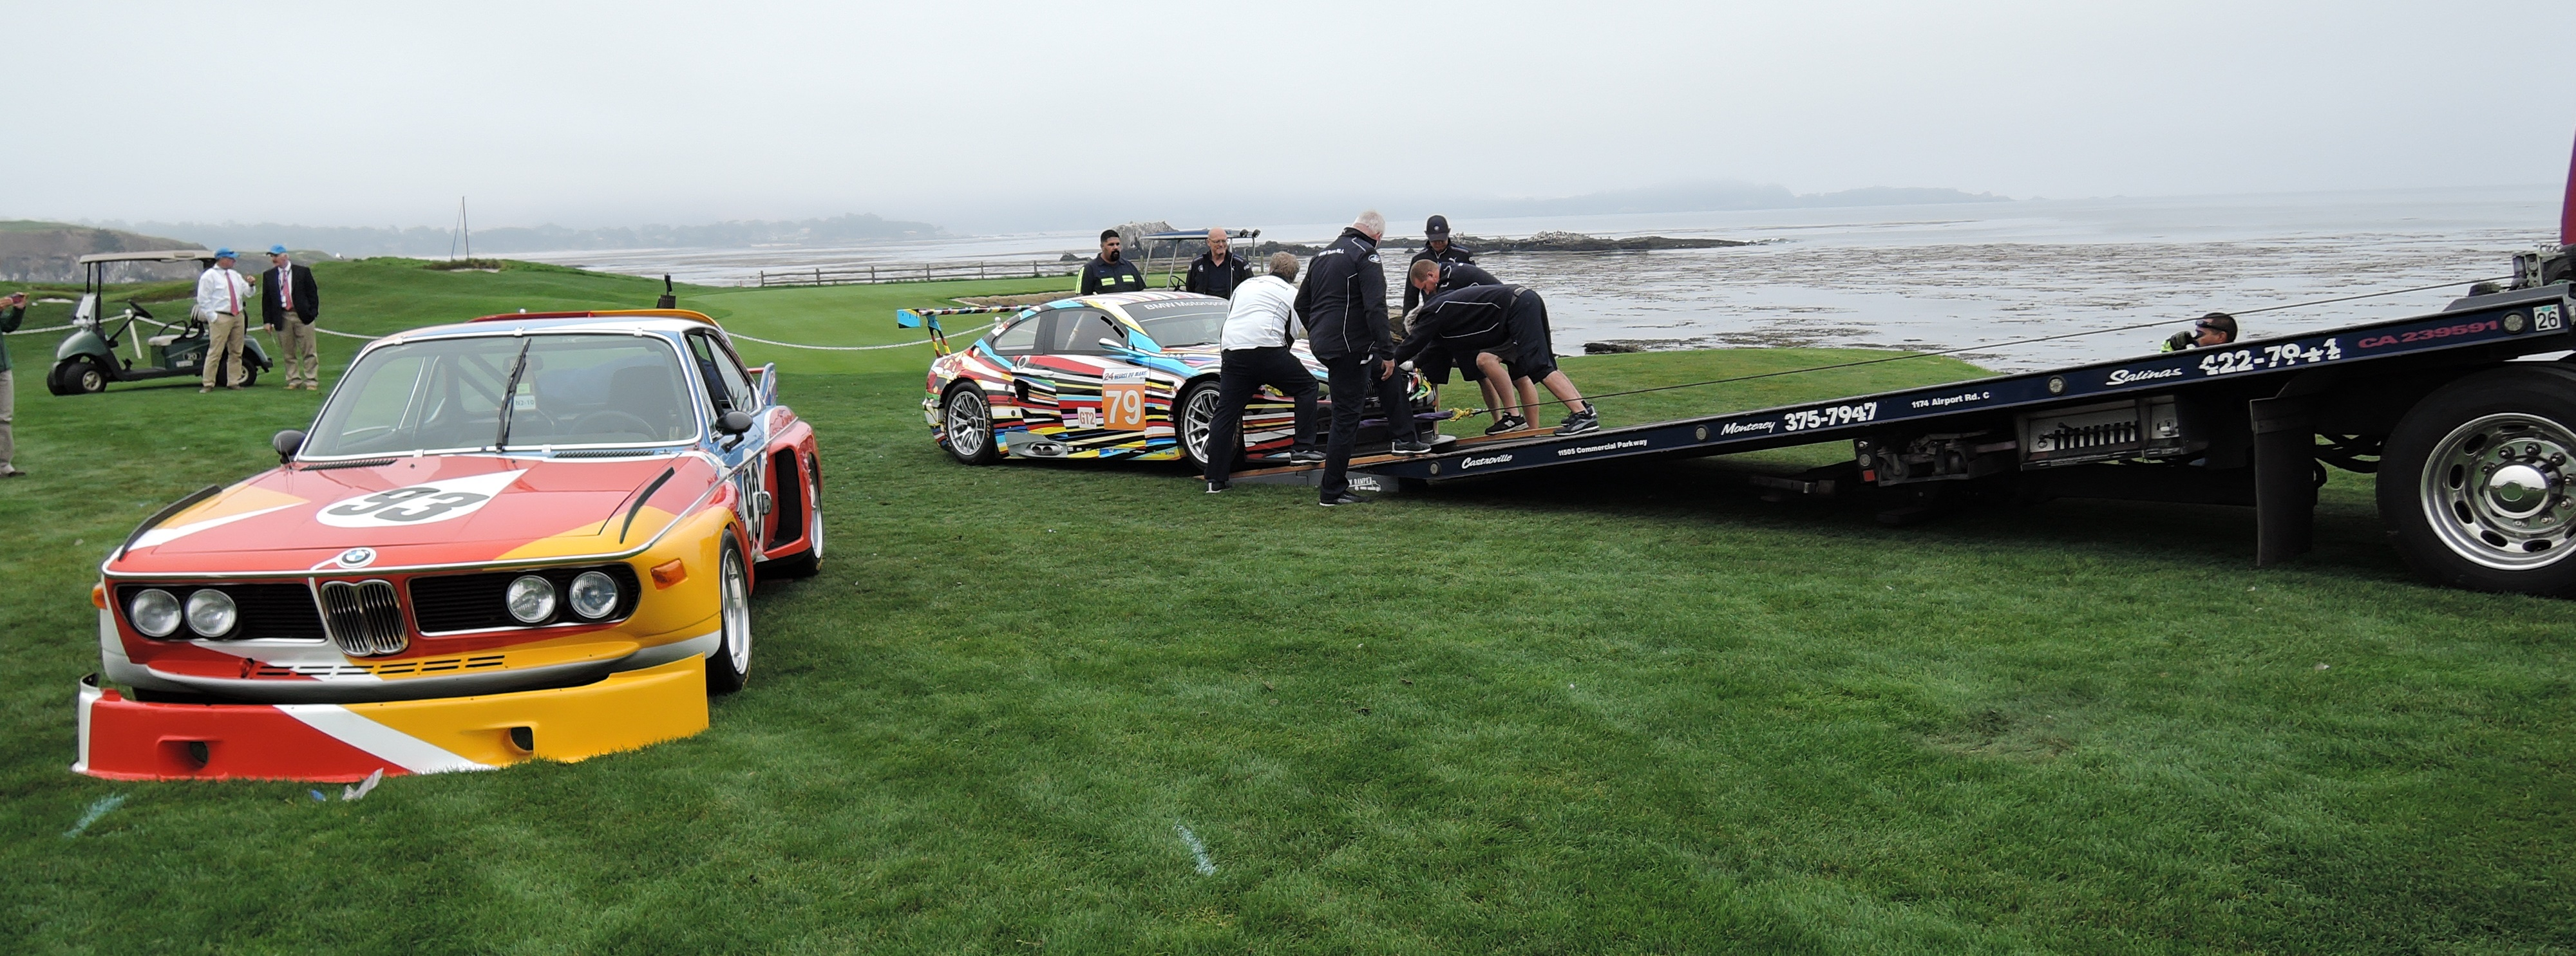 BMWs unloading at Pebble Beach Concours d'Elegance 2016